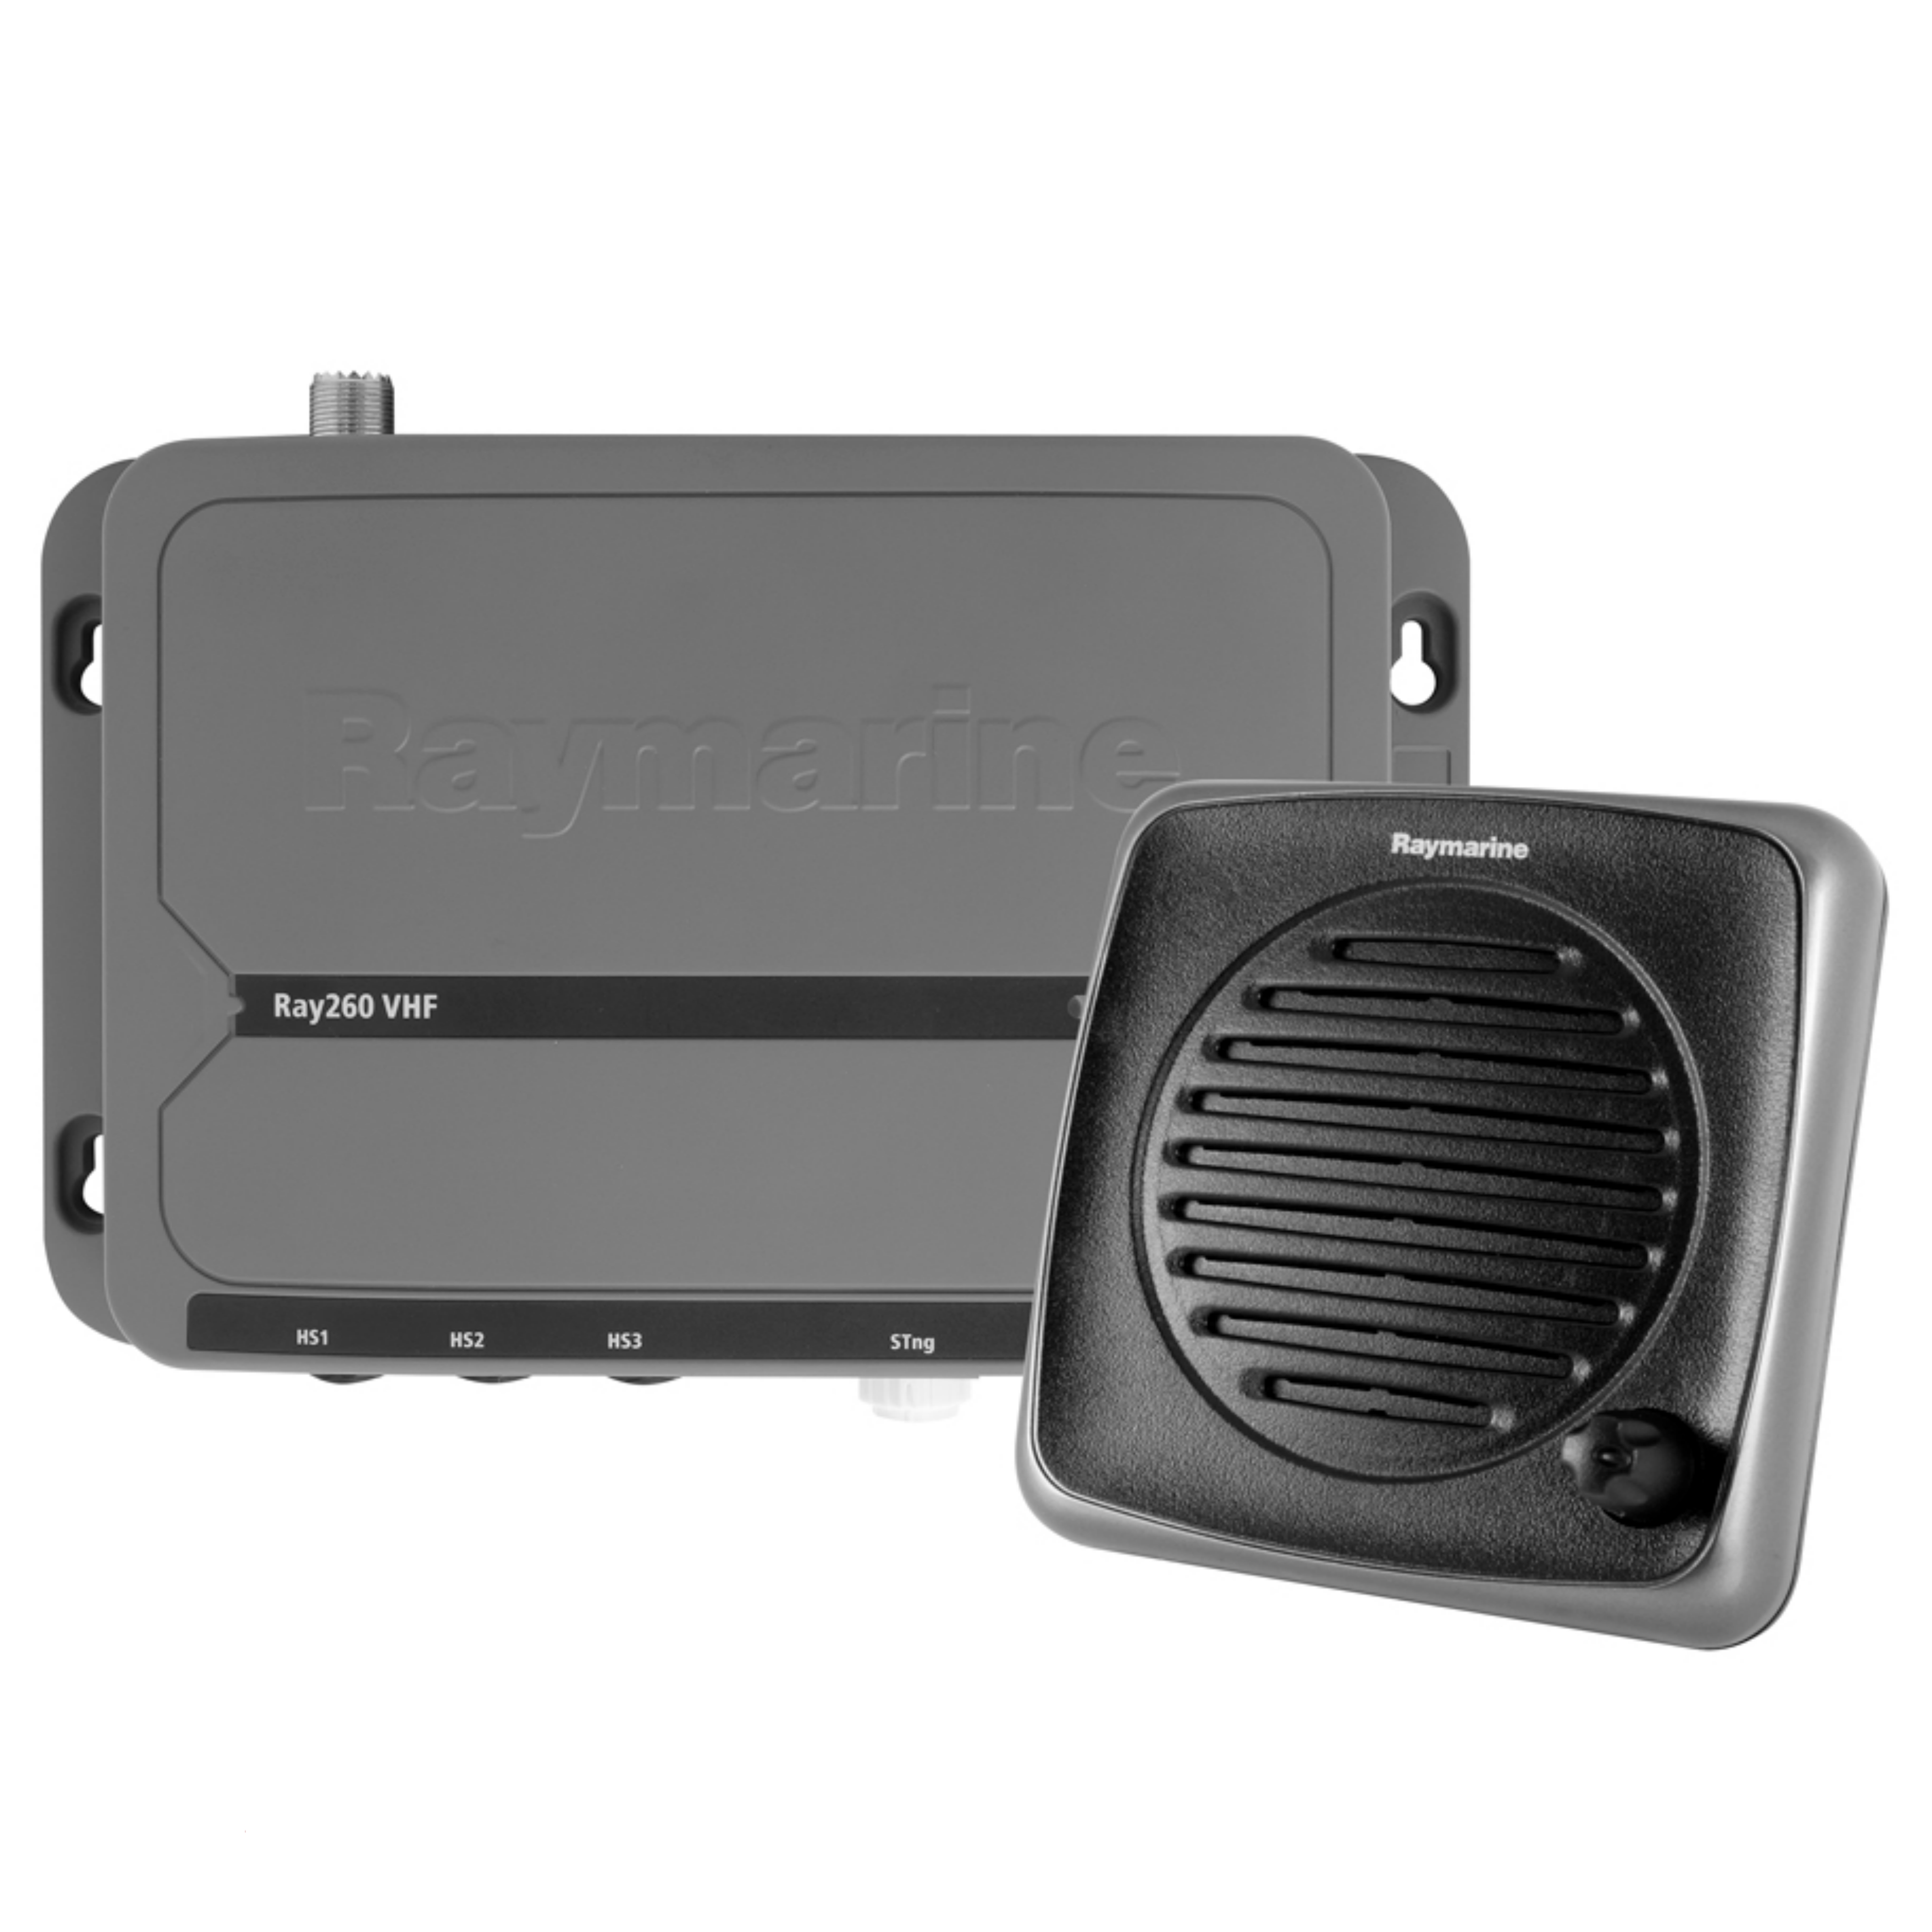 Raymarine E70253|RAY 260 VHF Radio & Active Speaker|EU Version|Class D DSC|For Marine